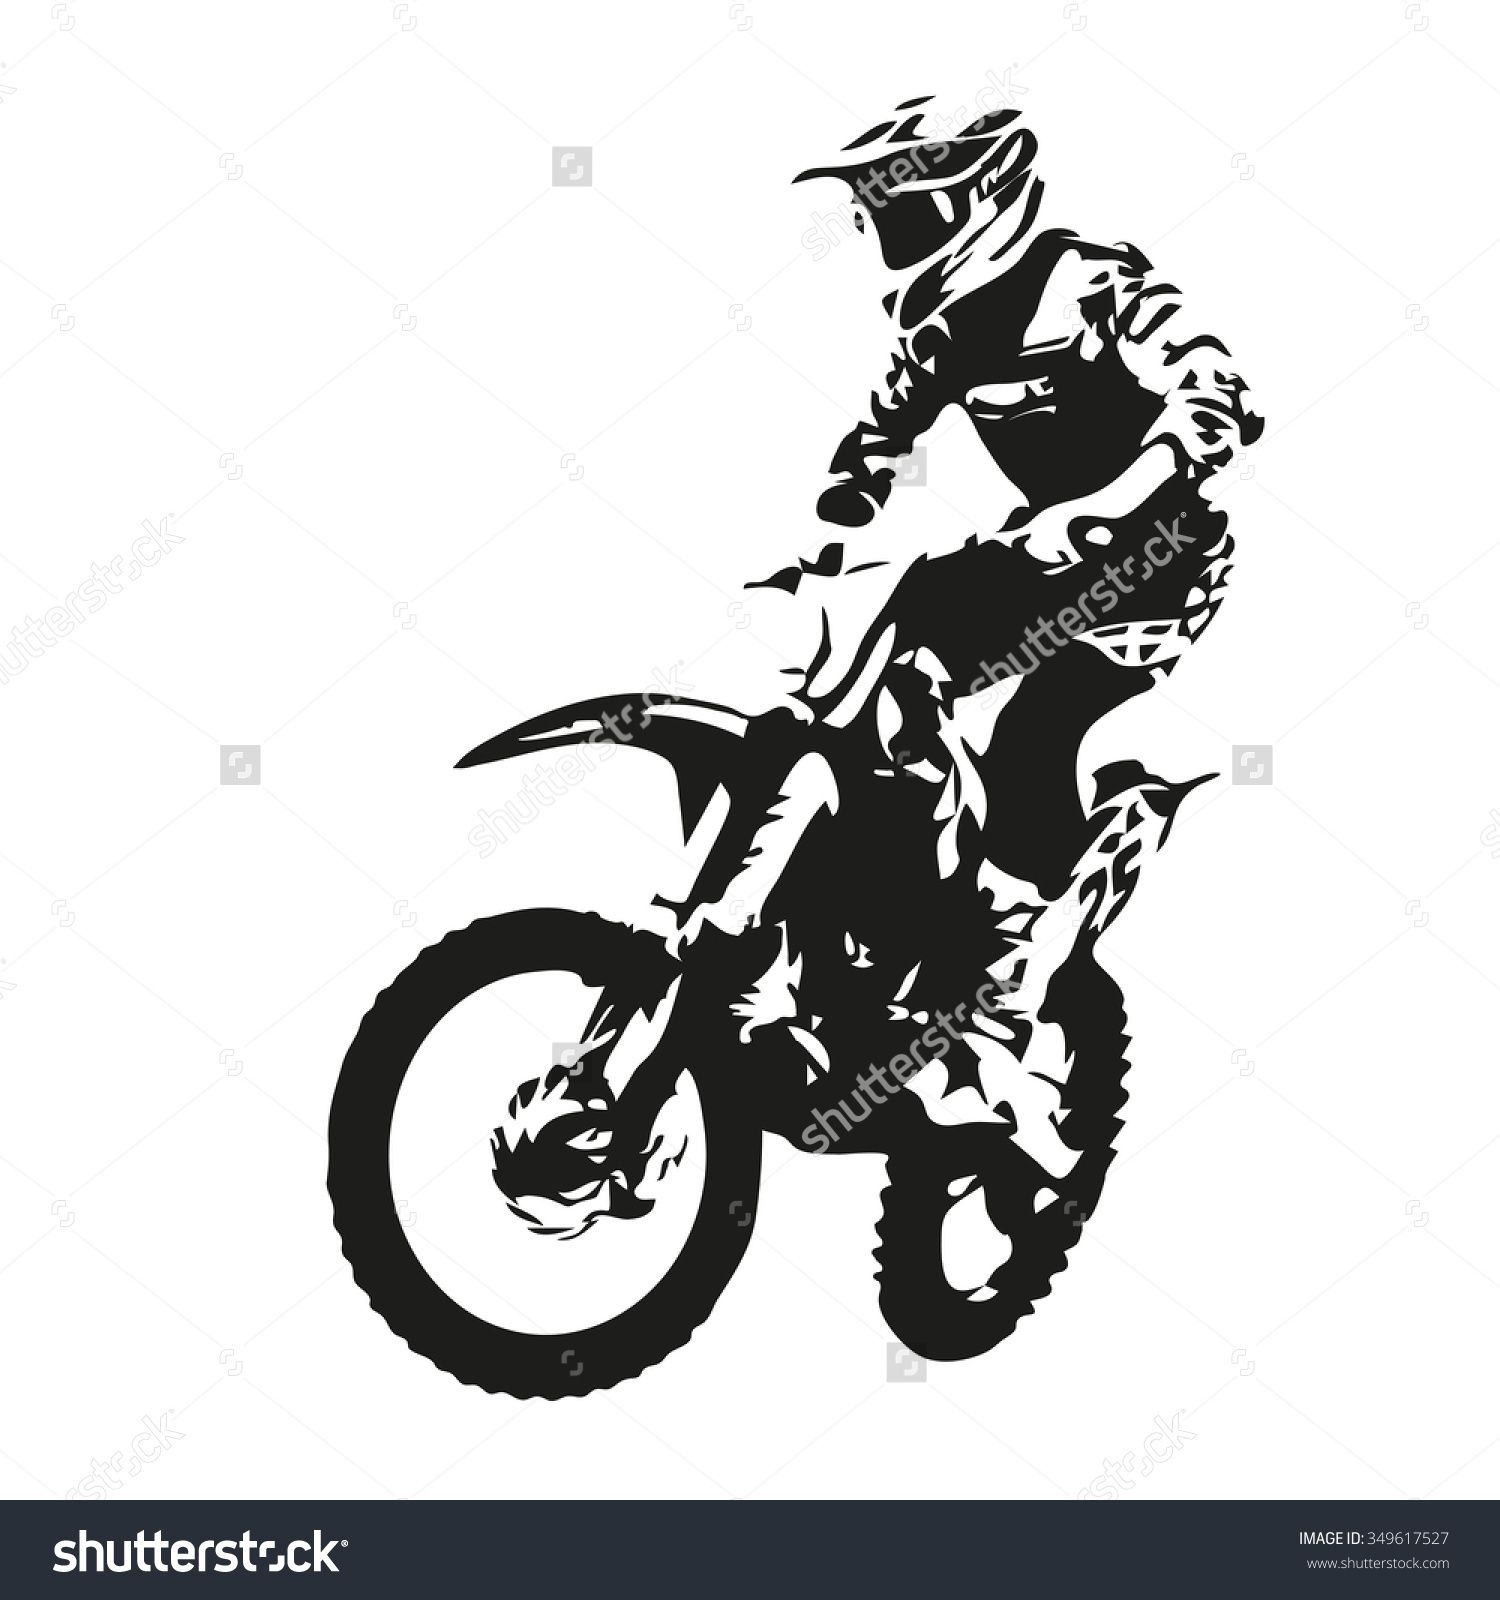 Trial bike silhouette homme moto motorcycle T Shirt